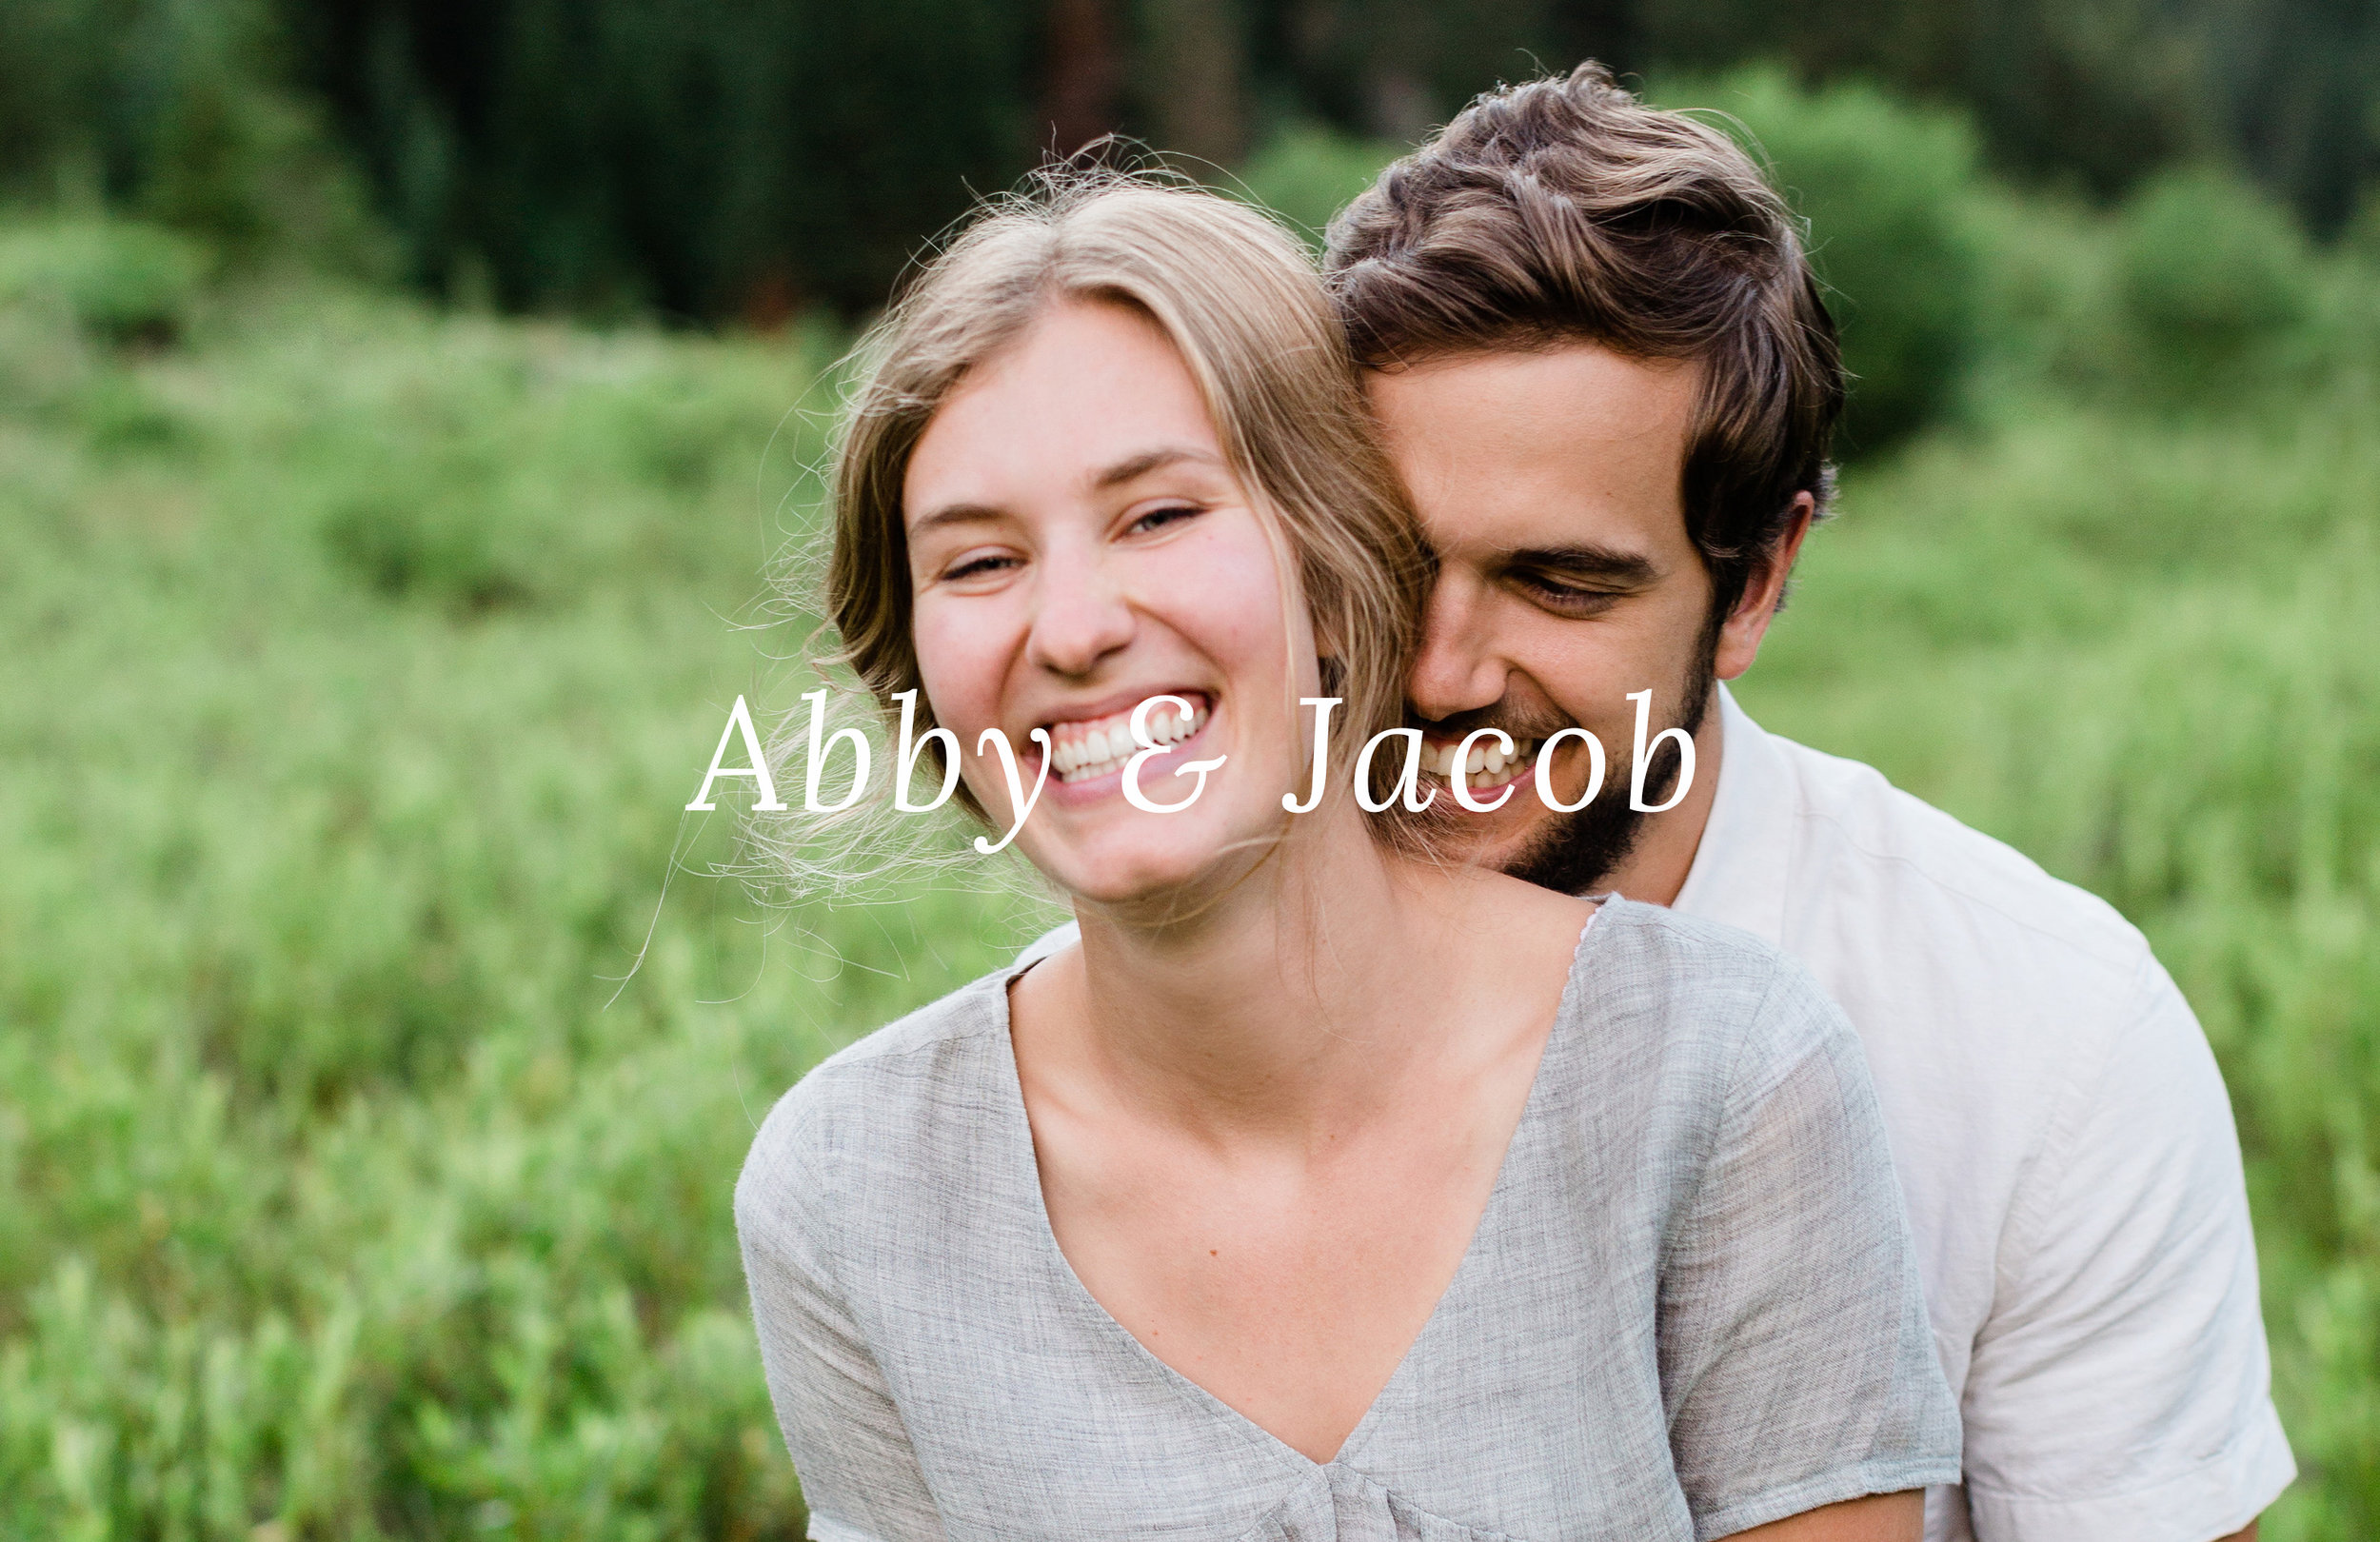 Jacob-Abby-Engagements-269-COVER.jpg